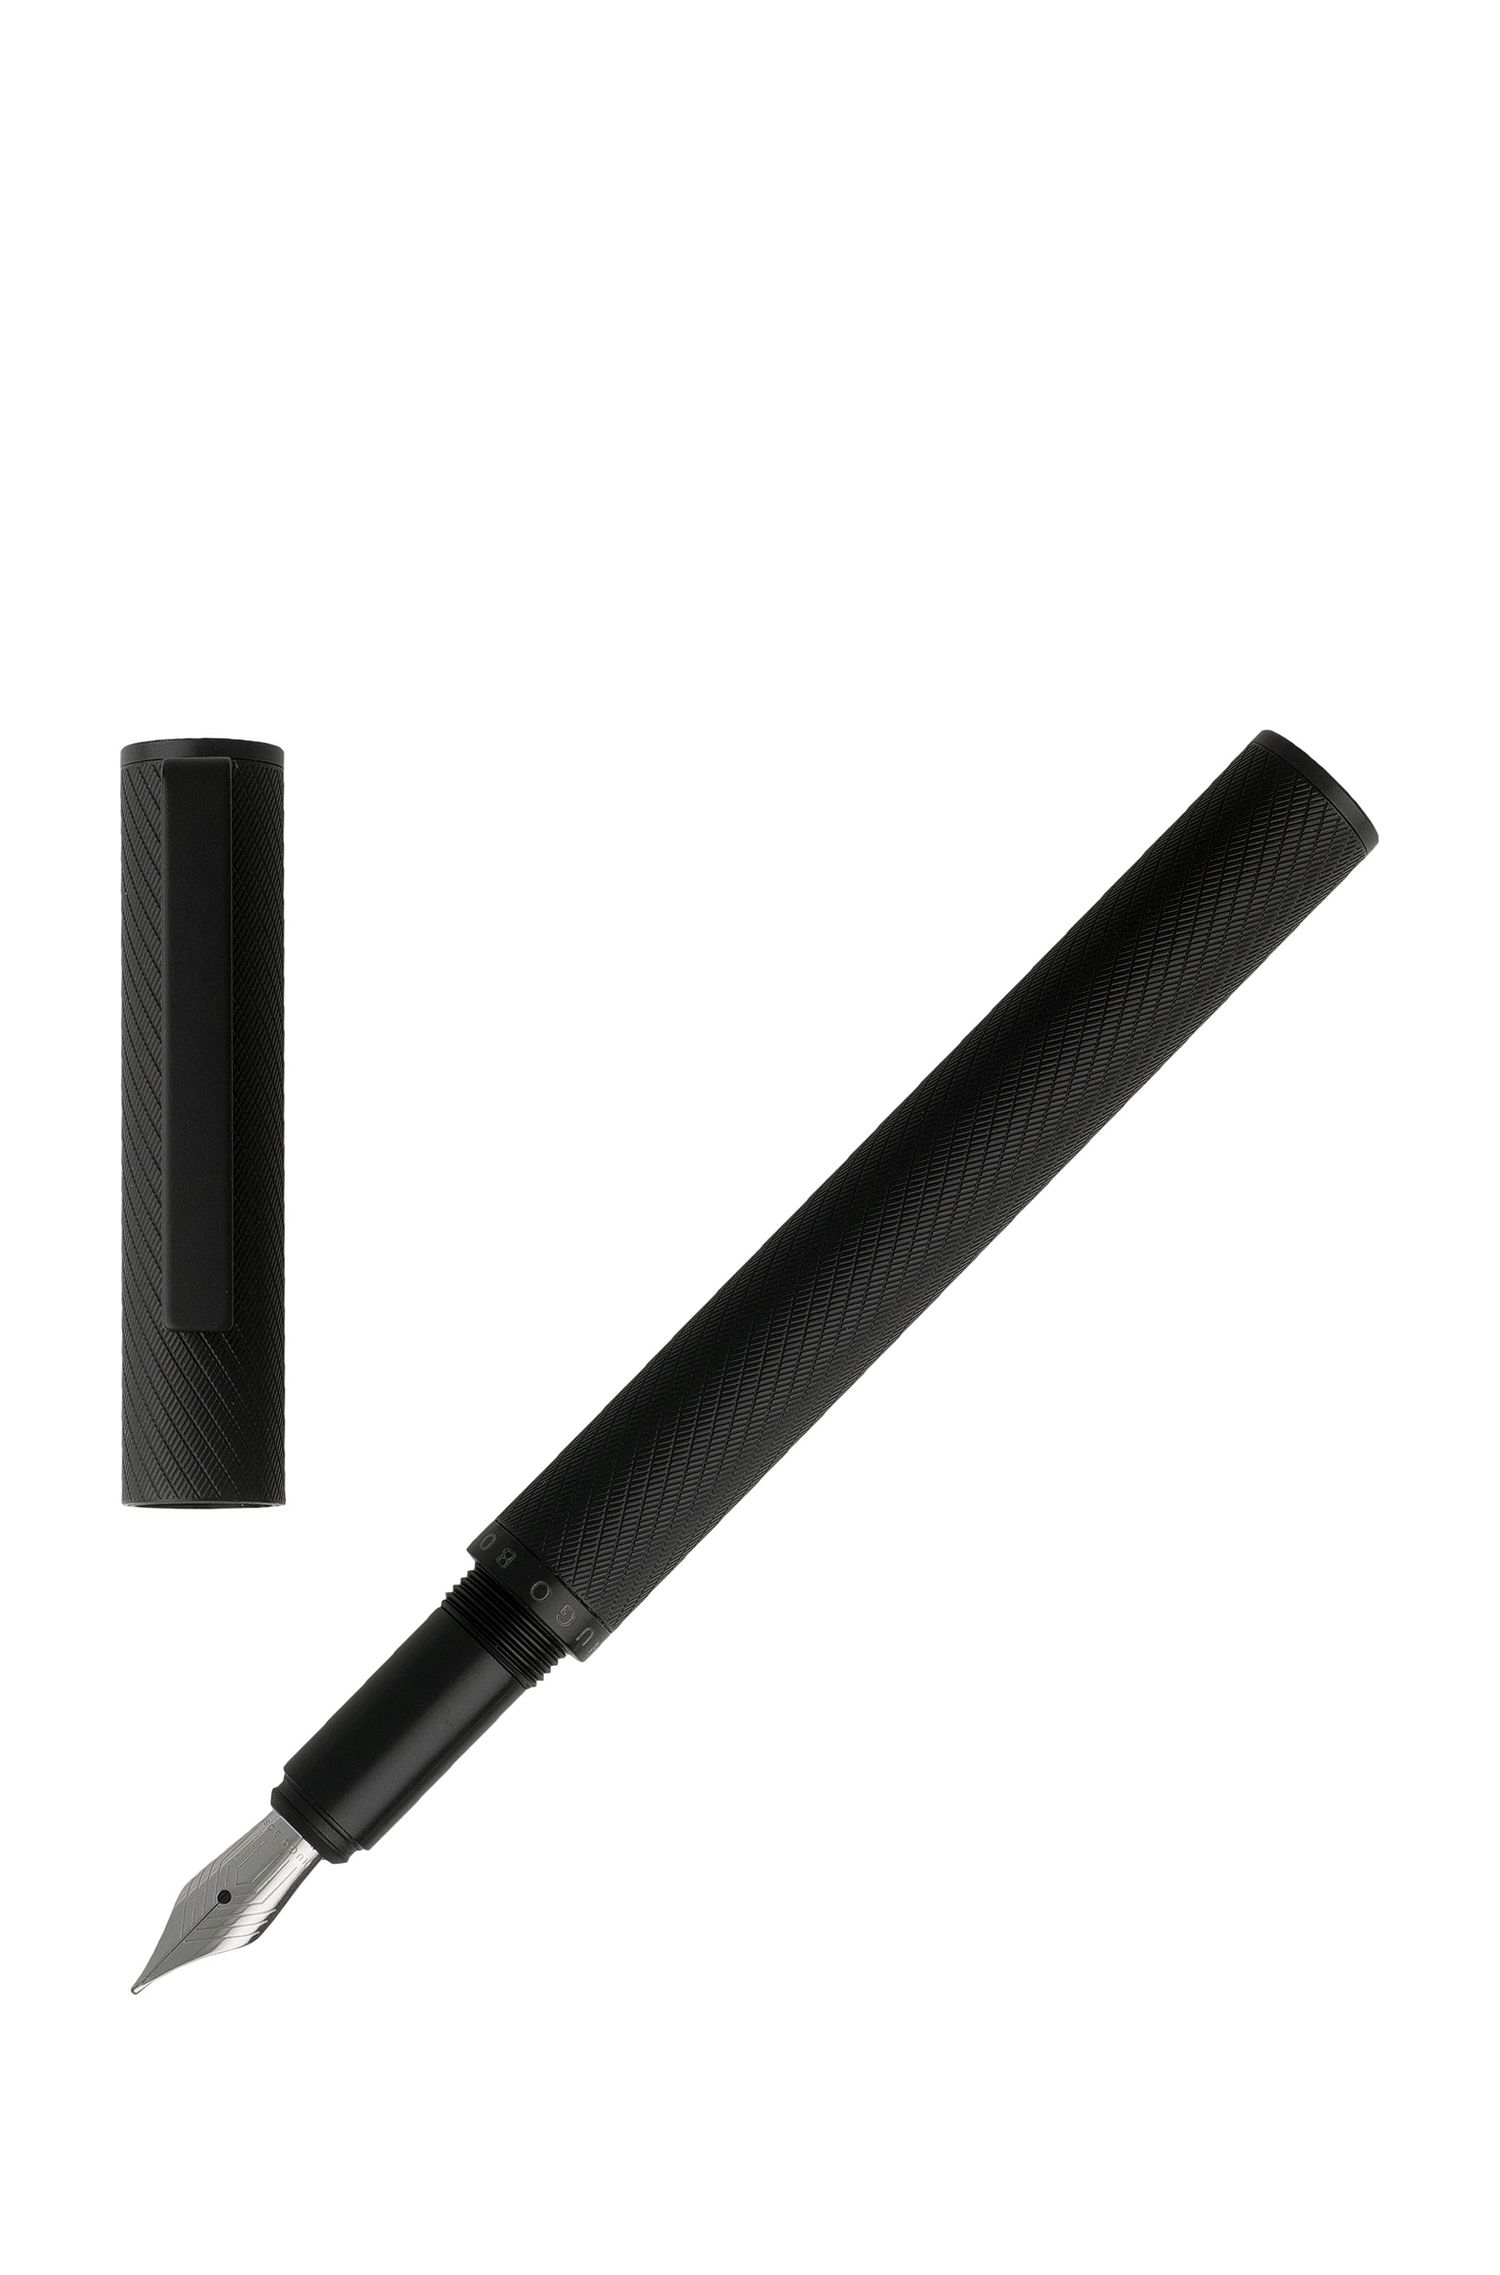 Fountain pen in textured black lacquer